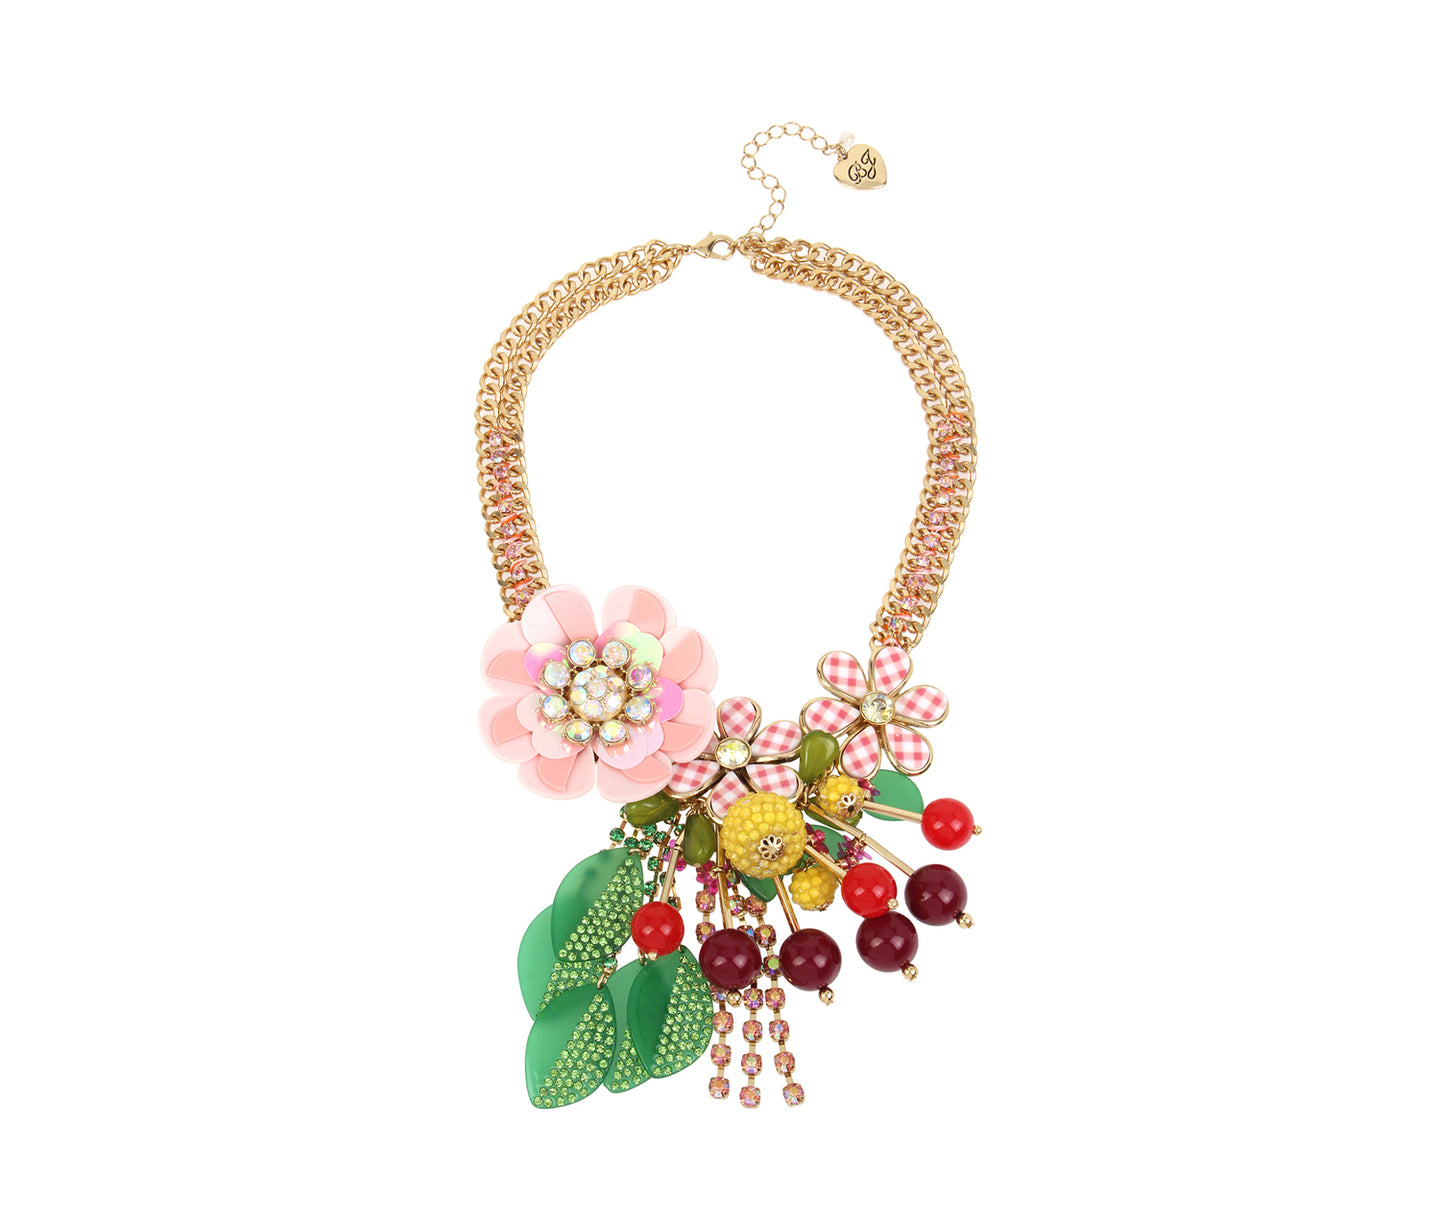 SUMMER PICNIC STATEMENT NECKLACE MULTI - JEWELRY - Betsey Johnson